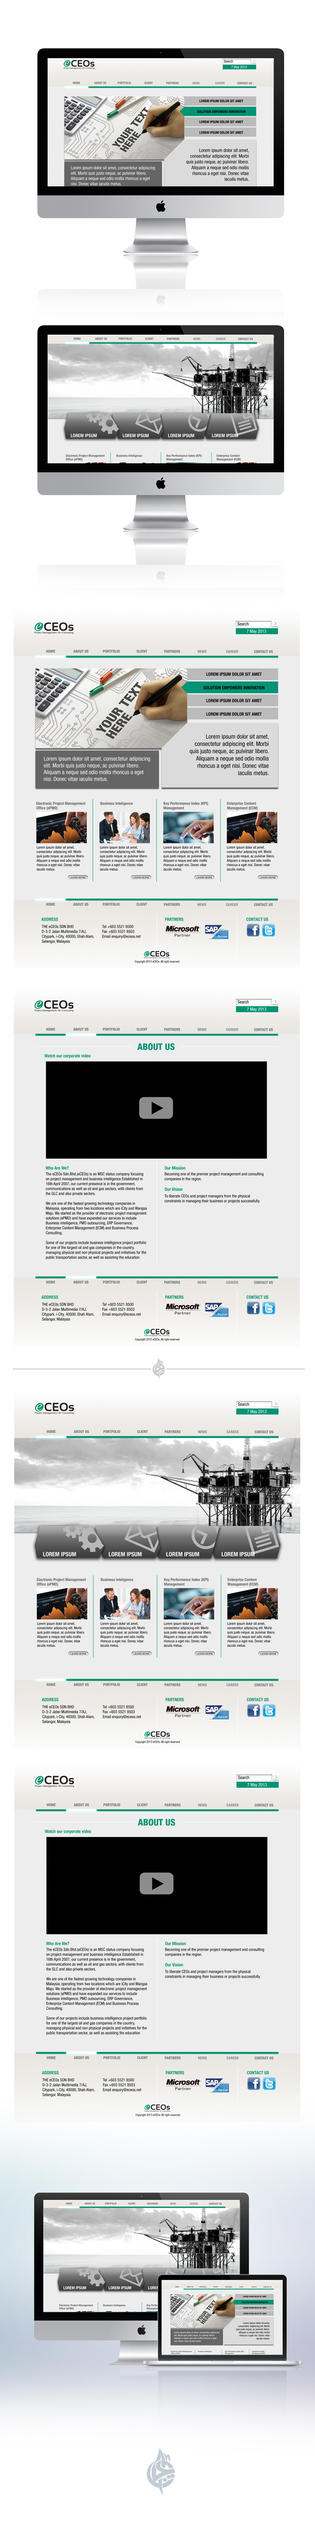 eCEOs Website Design 1 by AimanMD